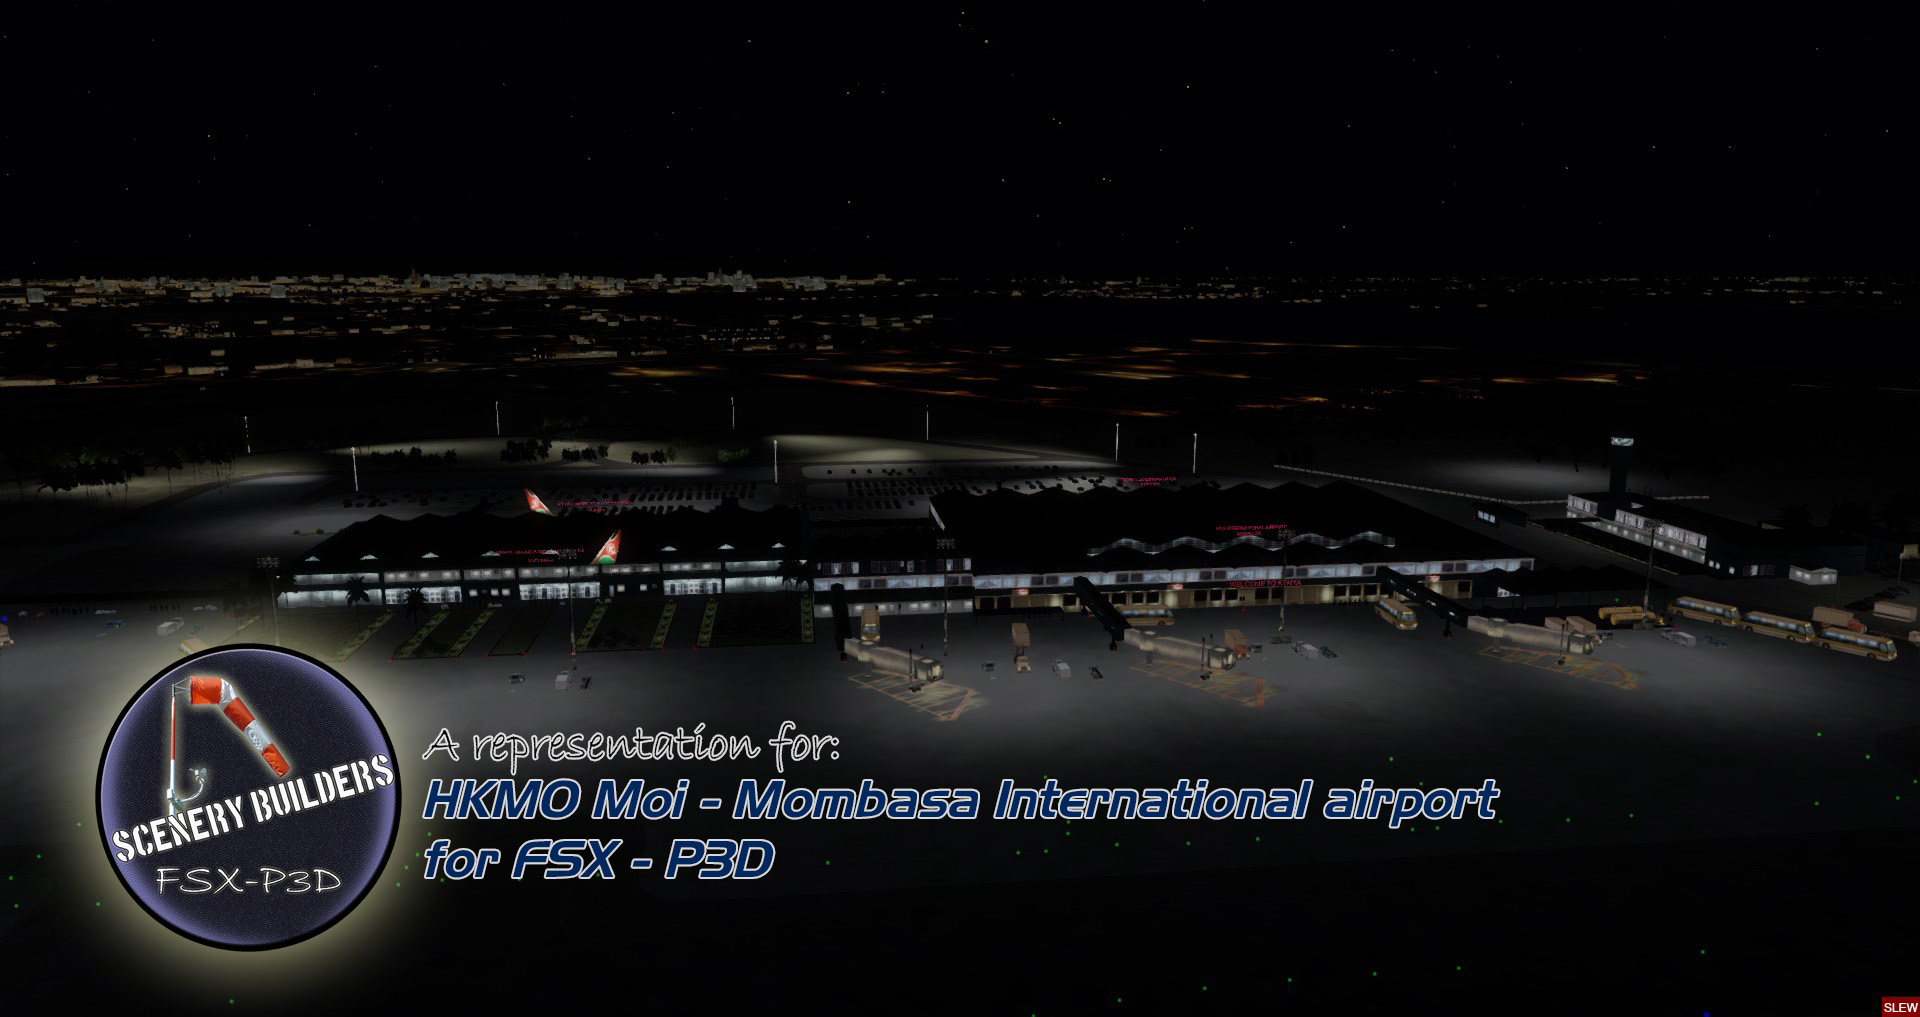 FSXCENERY - HKMO MOI INTERNATIONAL AIRPORT MOMBASA FSX P3D